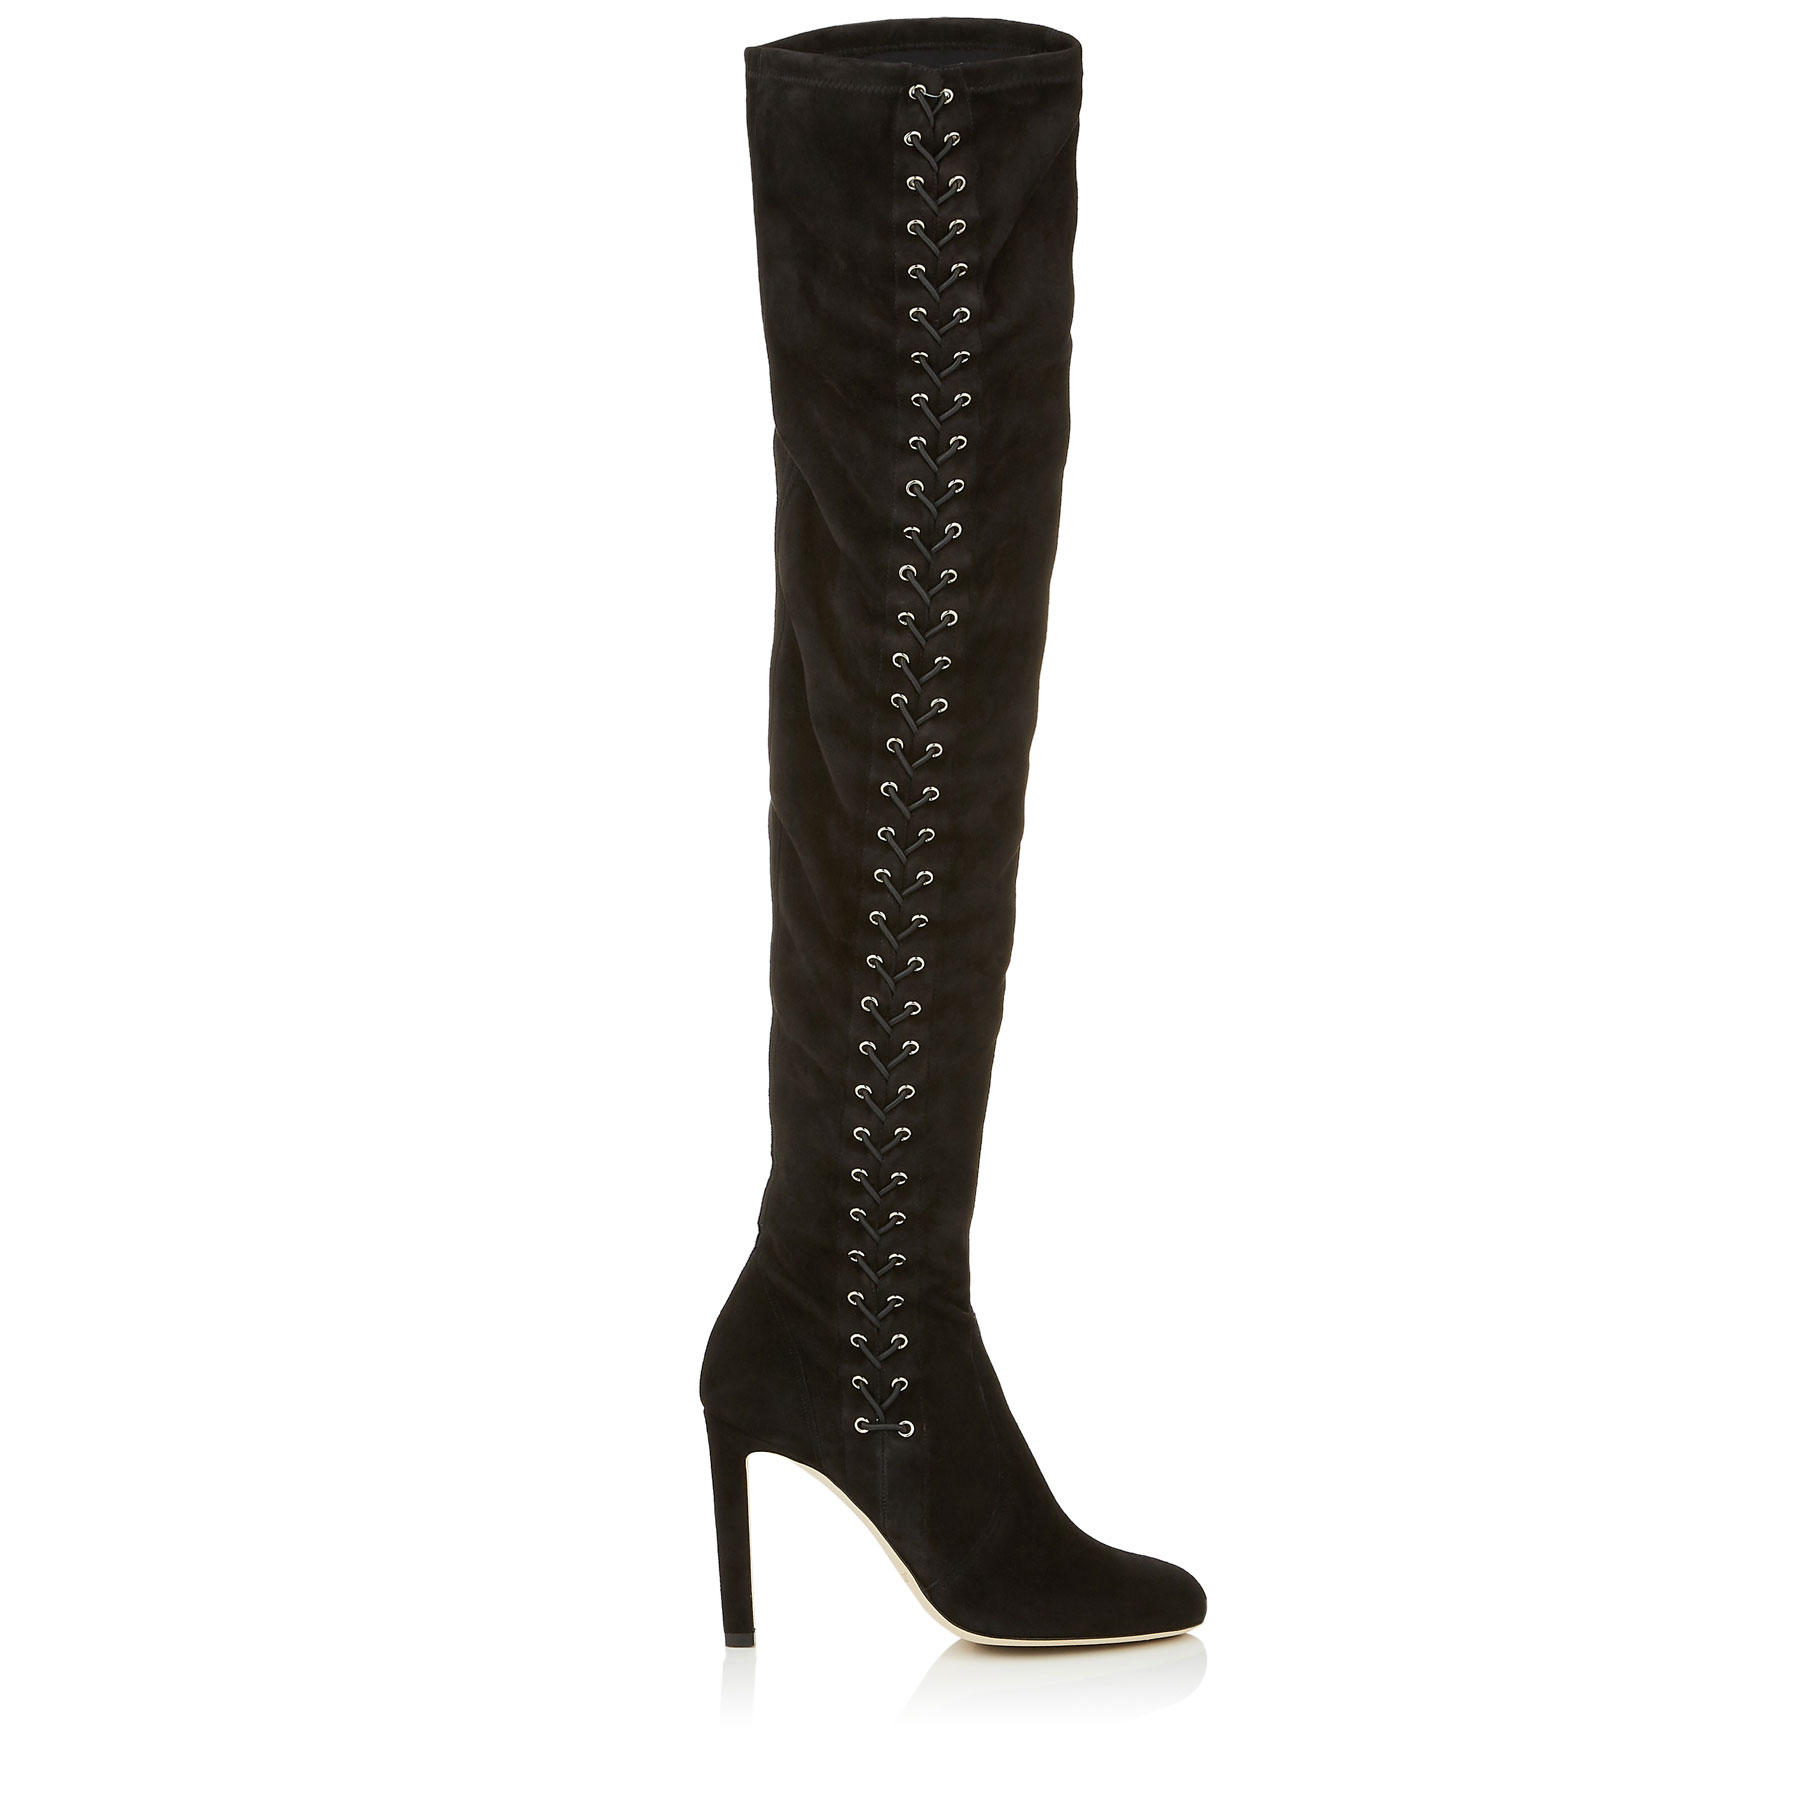 MARIE 100 Black Suede Over the Knee Boots by Jimmy Choo